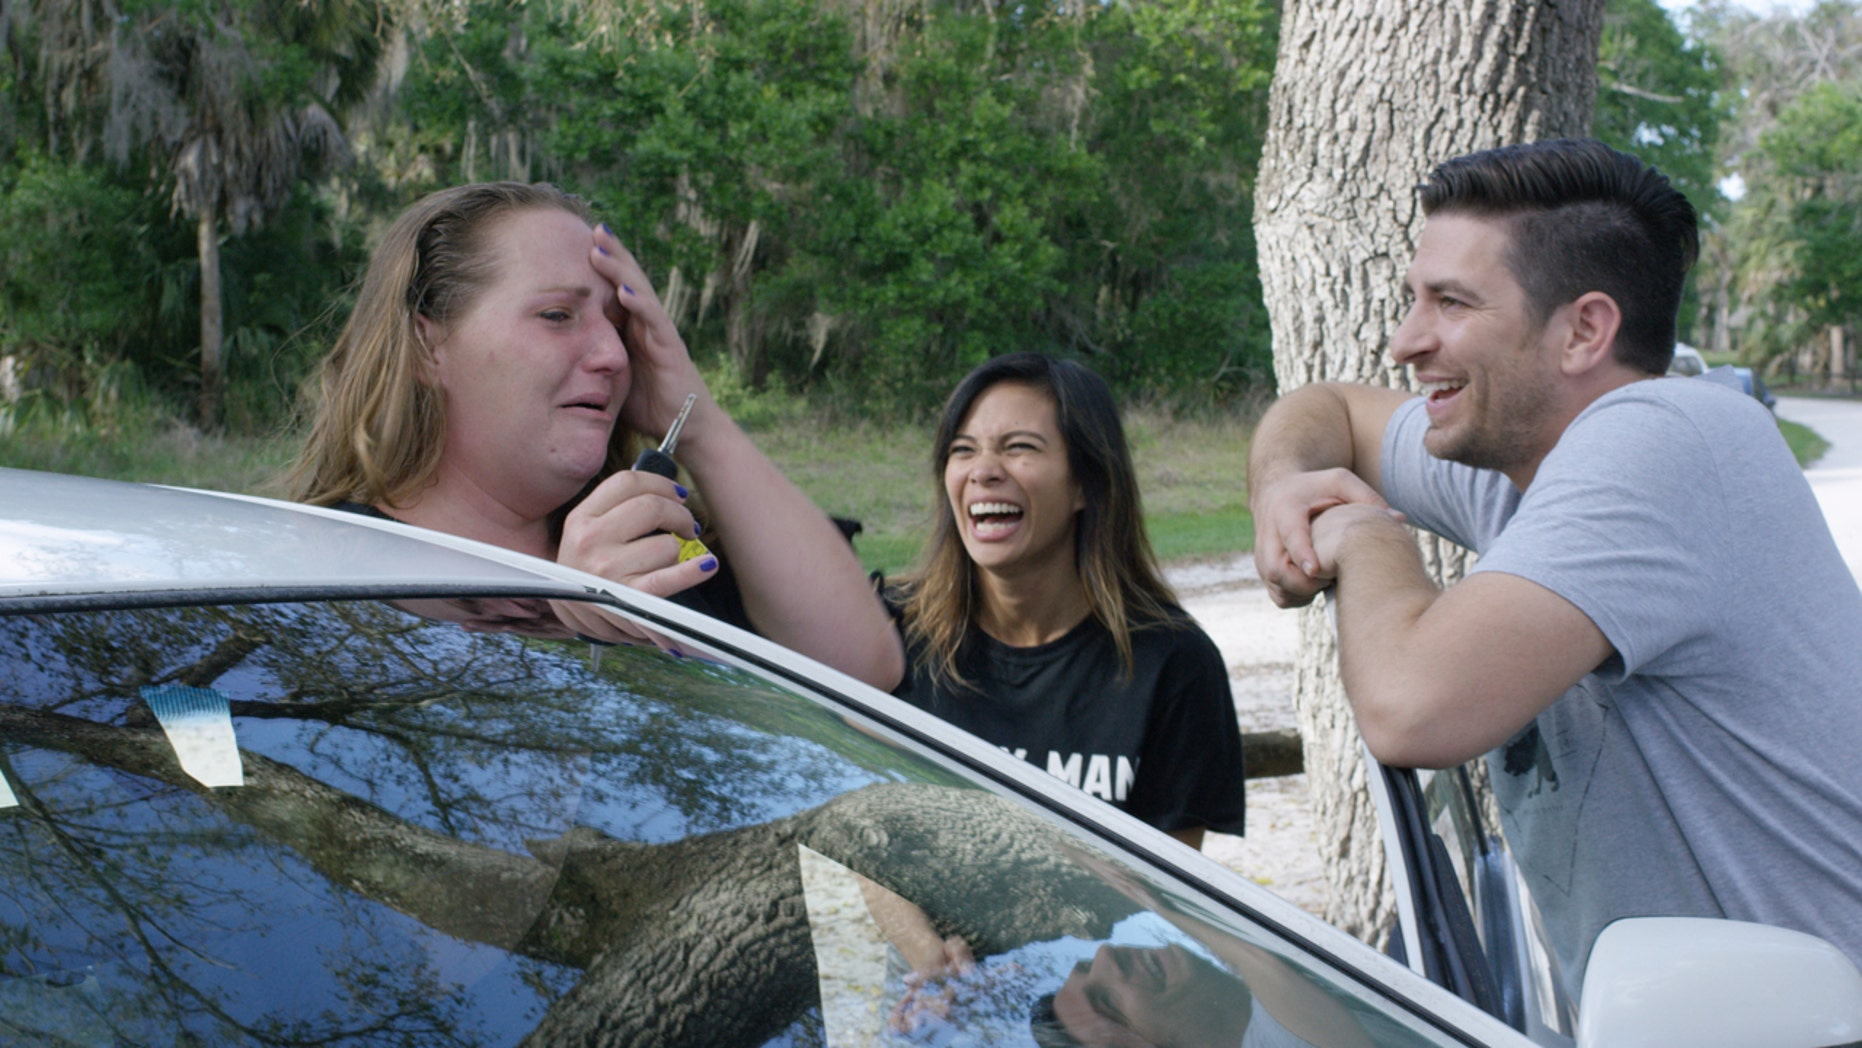 Celeste Bokstrom, a single mom caretaker and who has been without a car, was gifted a vehicle and helped in other significant ways by Burly Man Coffee founders, Tiana and Jeremy Wiles. The company has a goal of giving away 100 cars to single moms across the country.